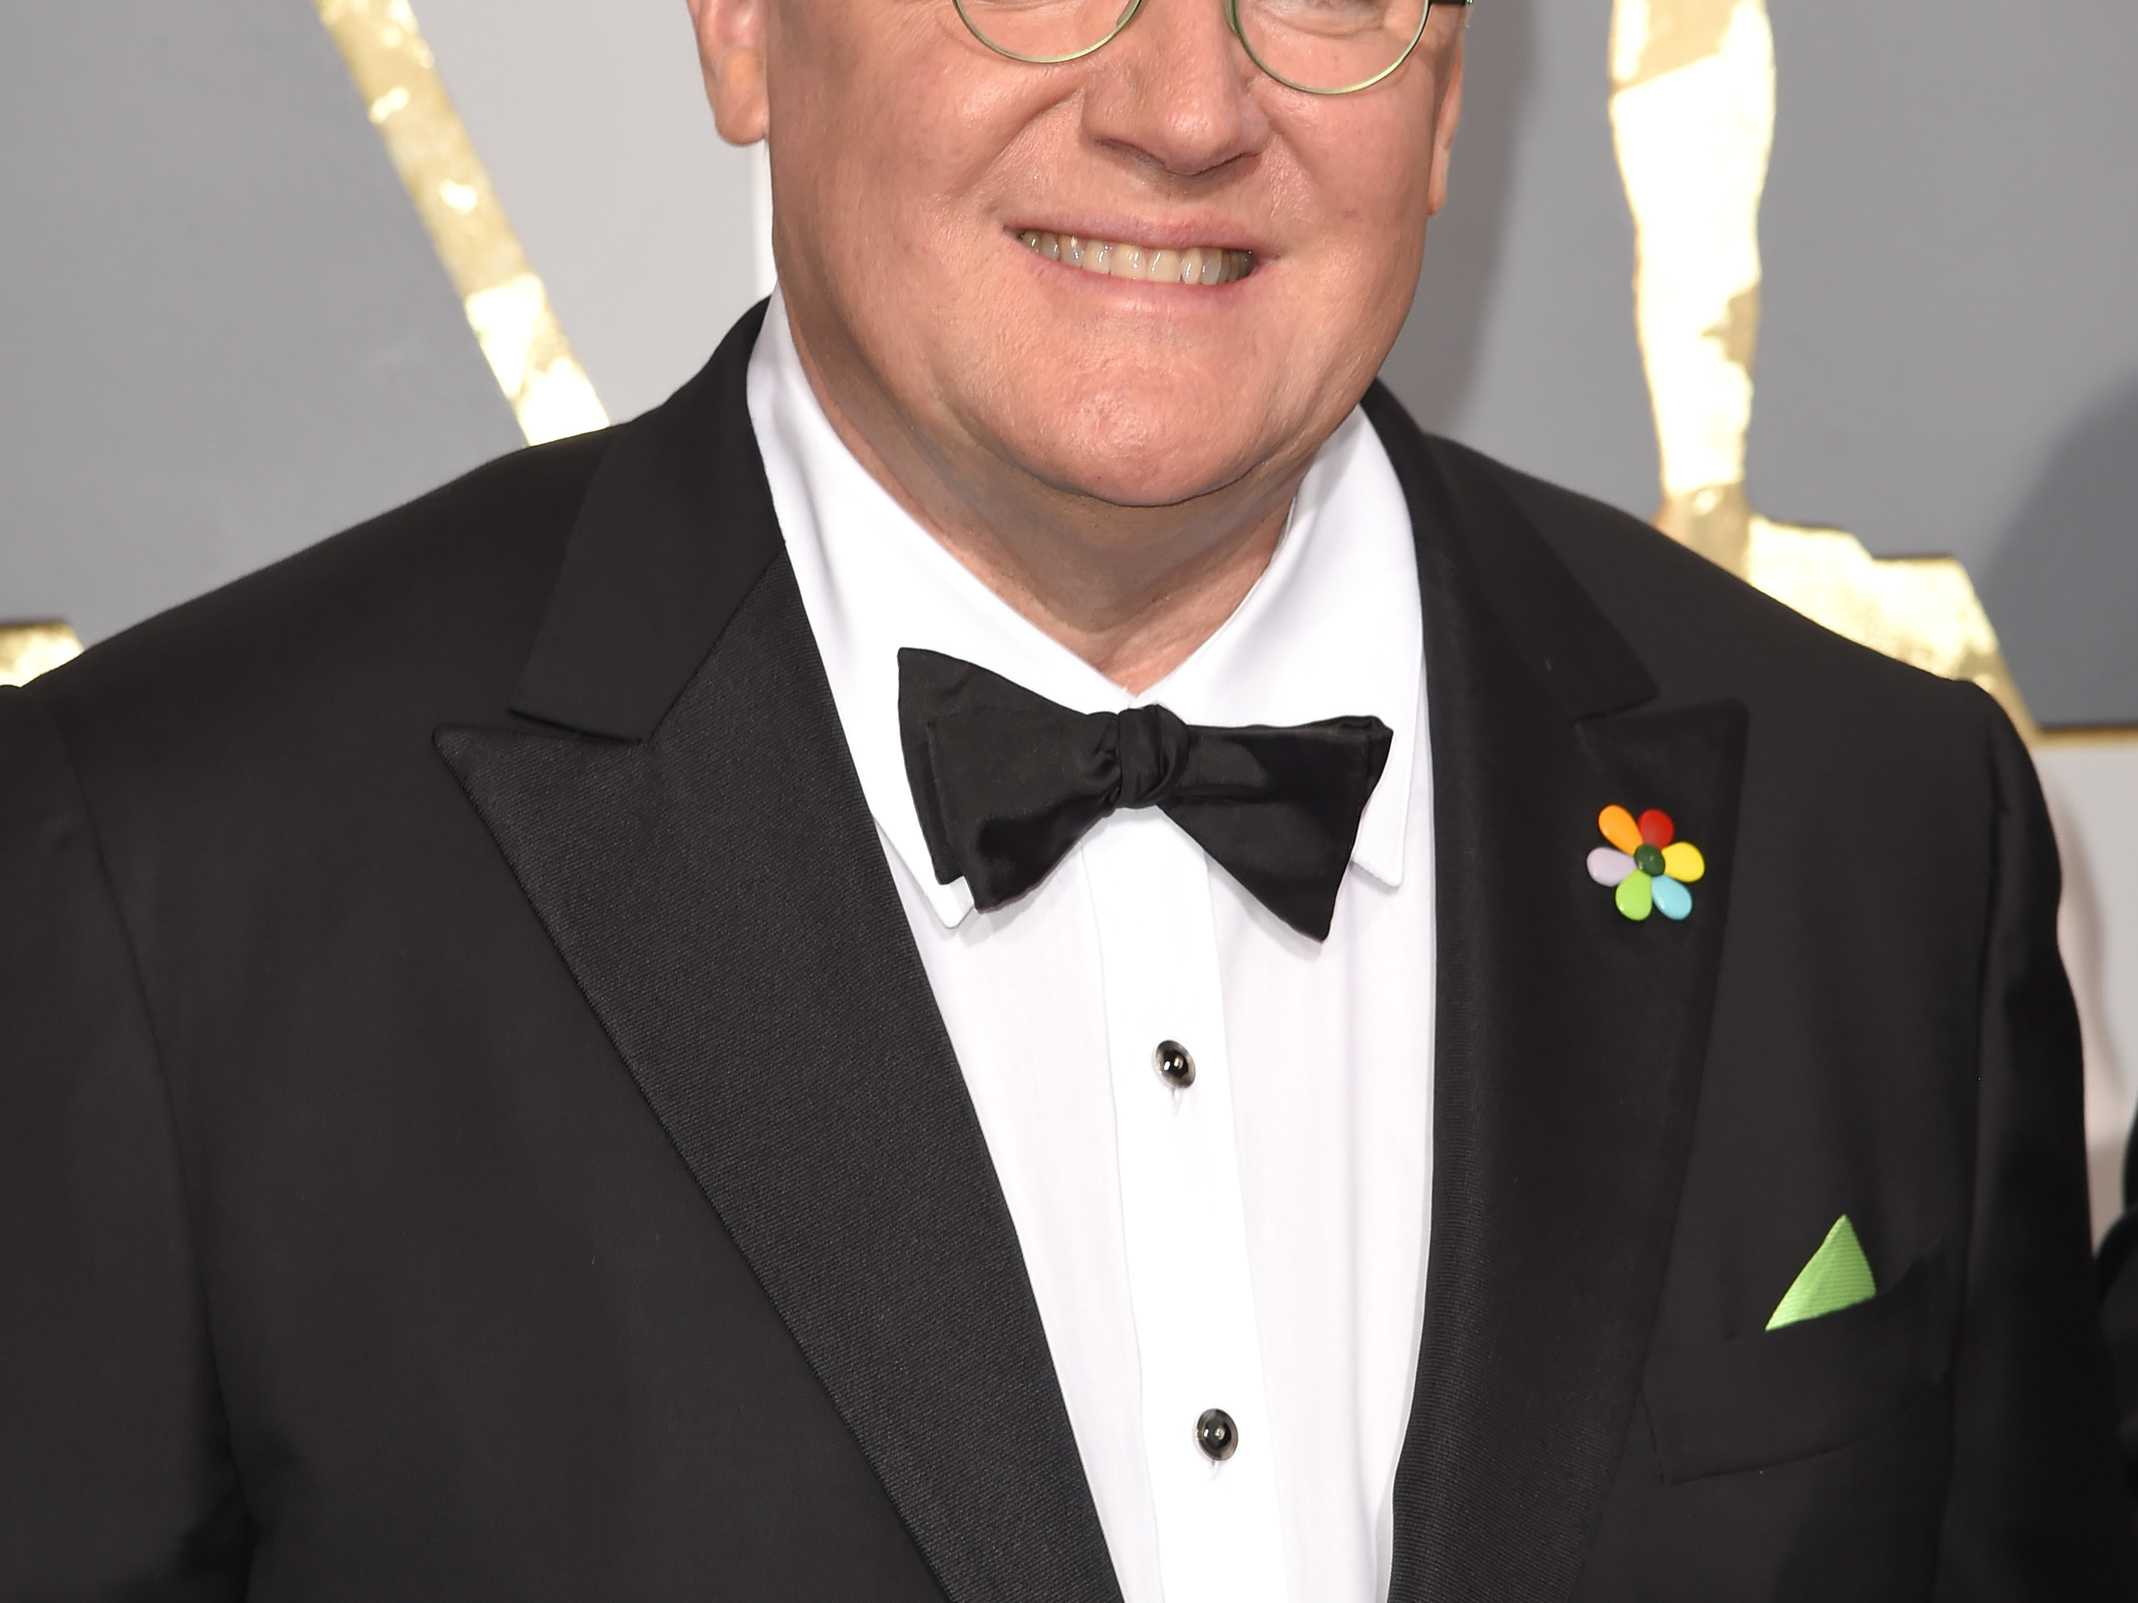 Disney Animation, Pixar Chief John Lasseter Taking Leave